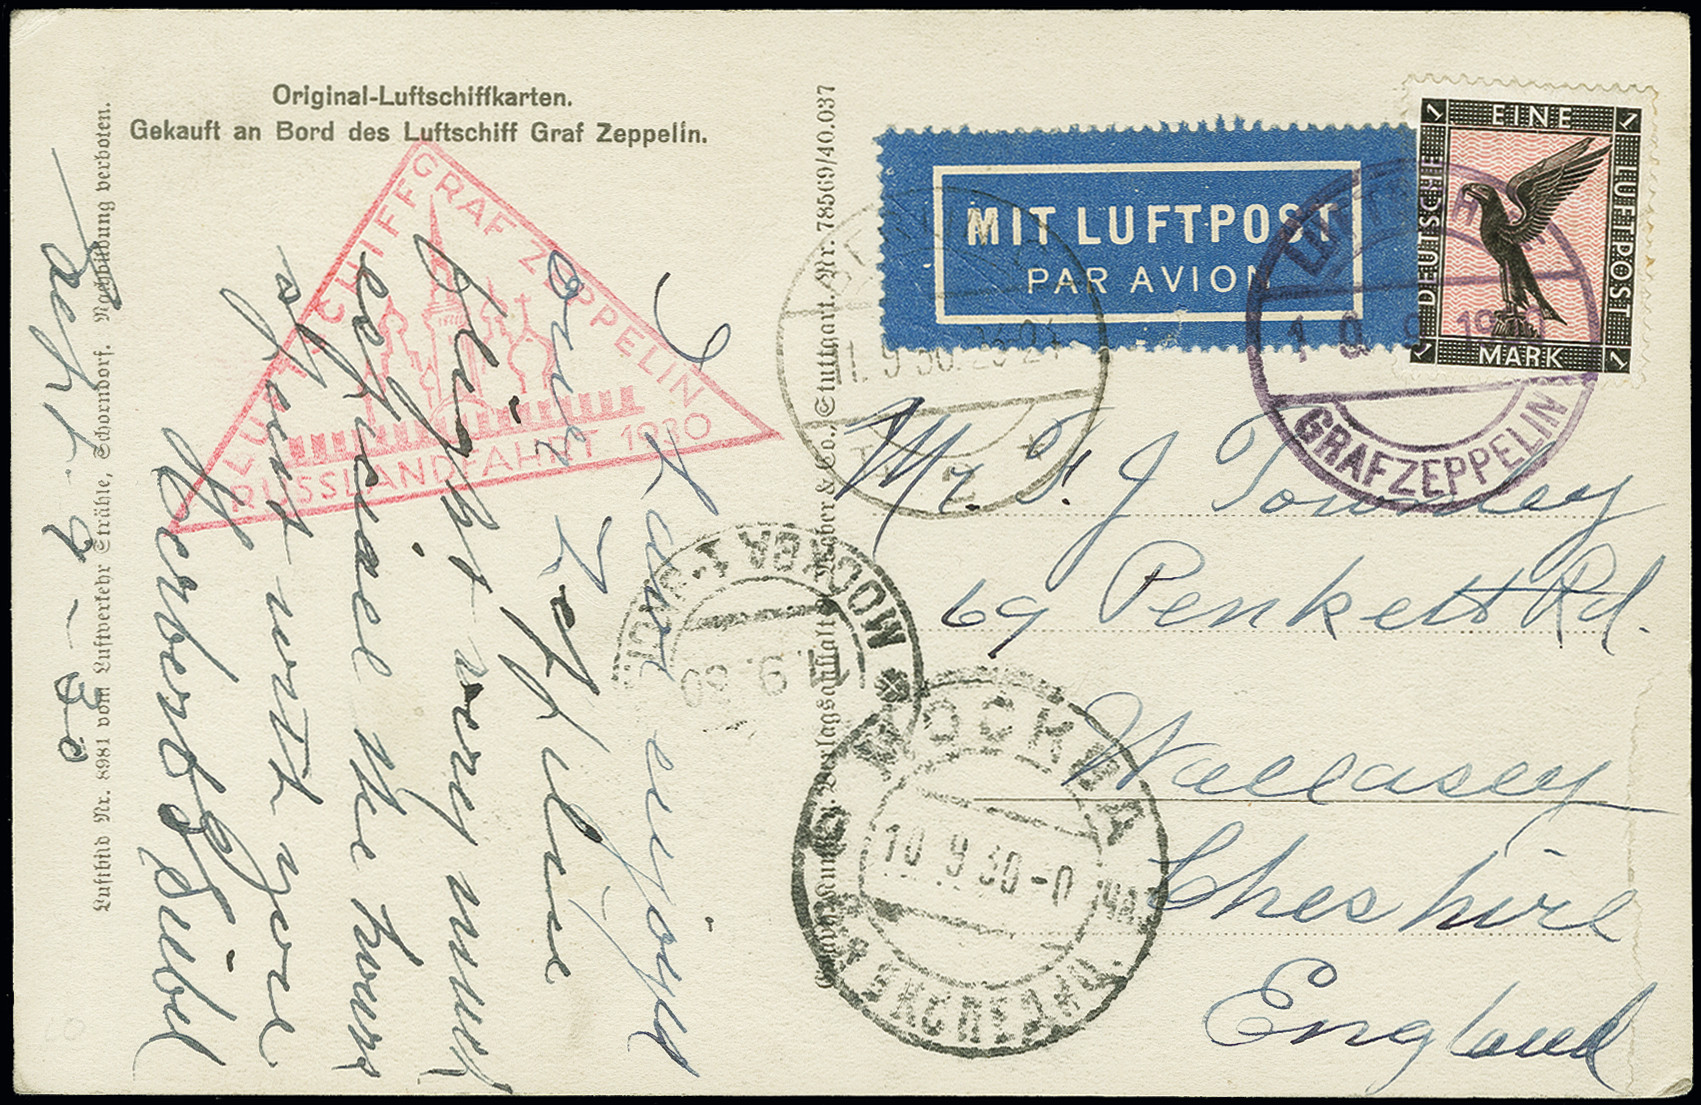 Stamp Auction - airmail zeppelin - Auction #368- Day 2, lot 1189